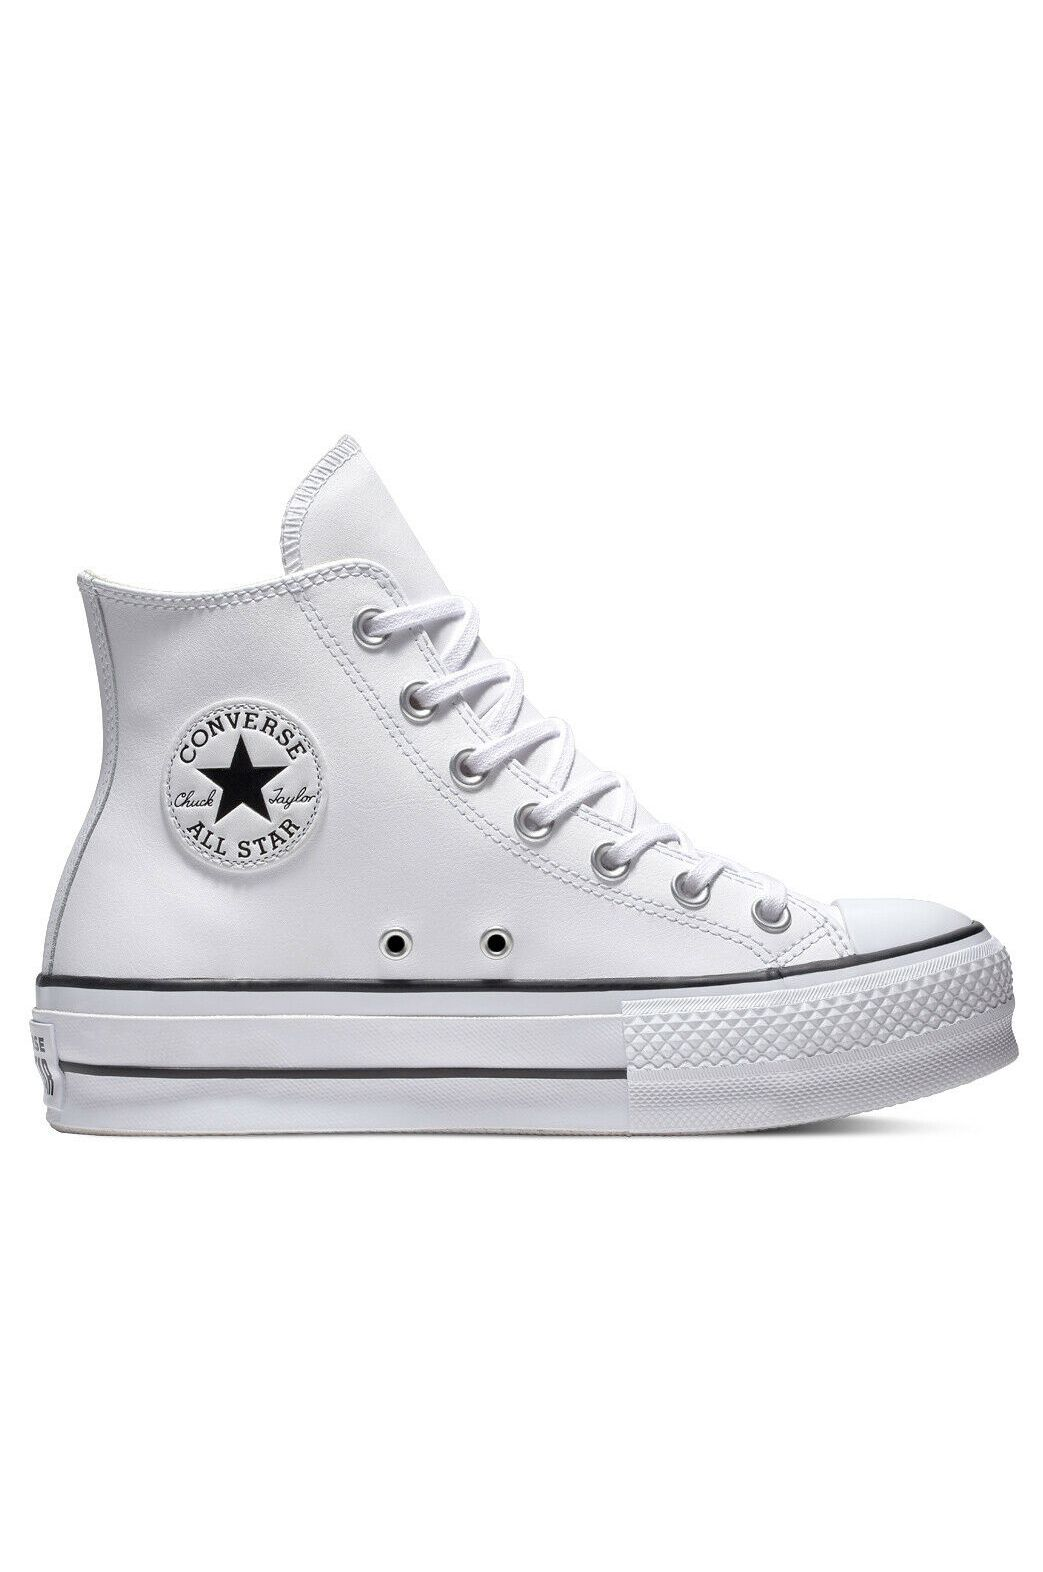 Tenis Converse CHUCK TAYLOR ALL STAR LIFT HI White/Black/White